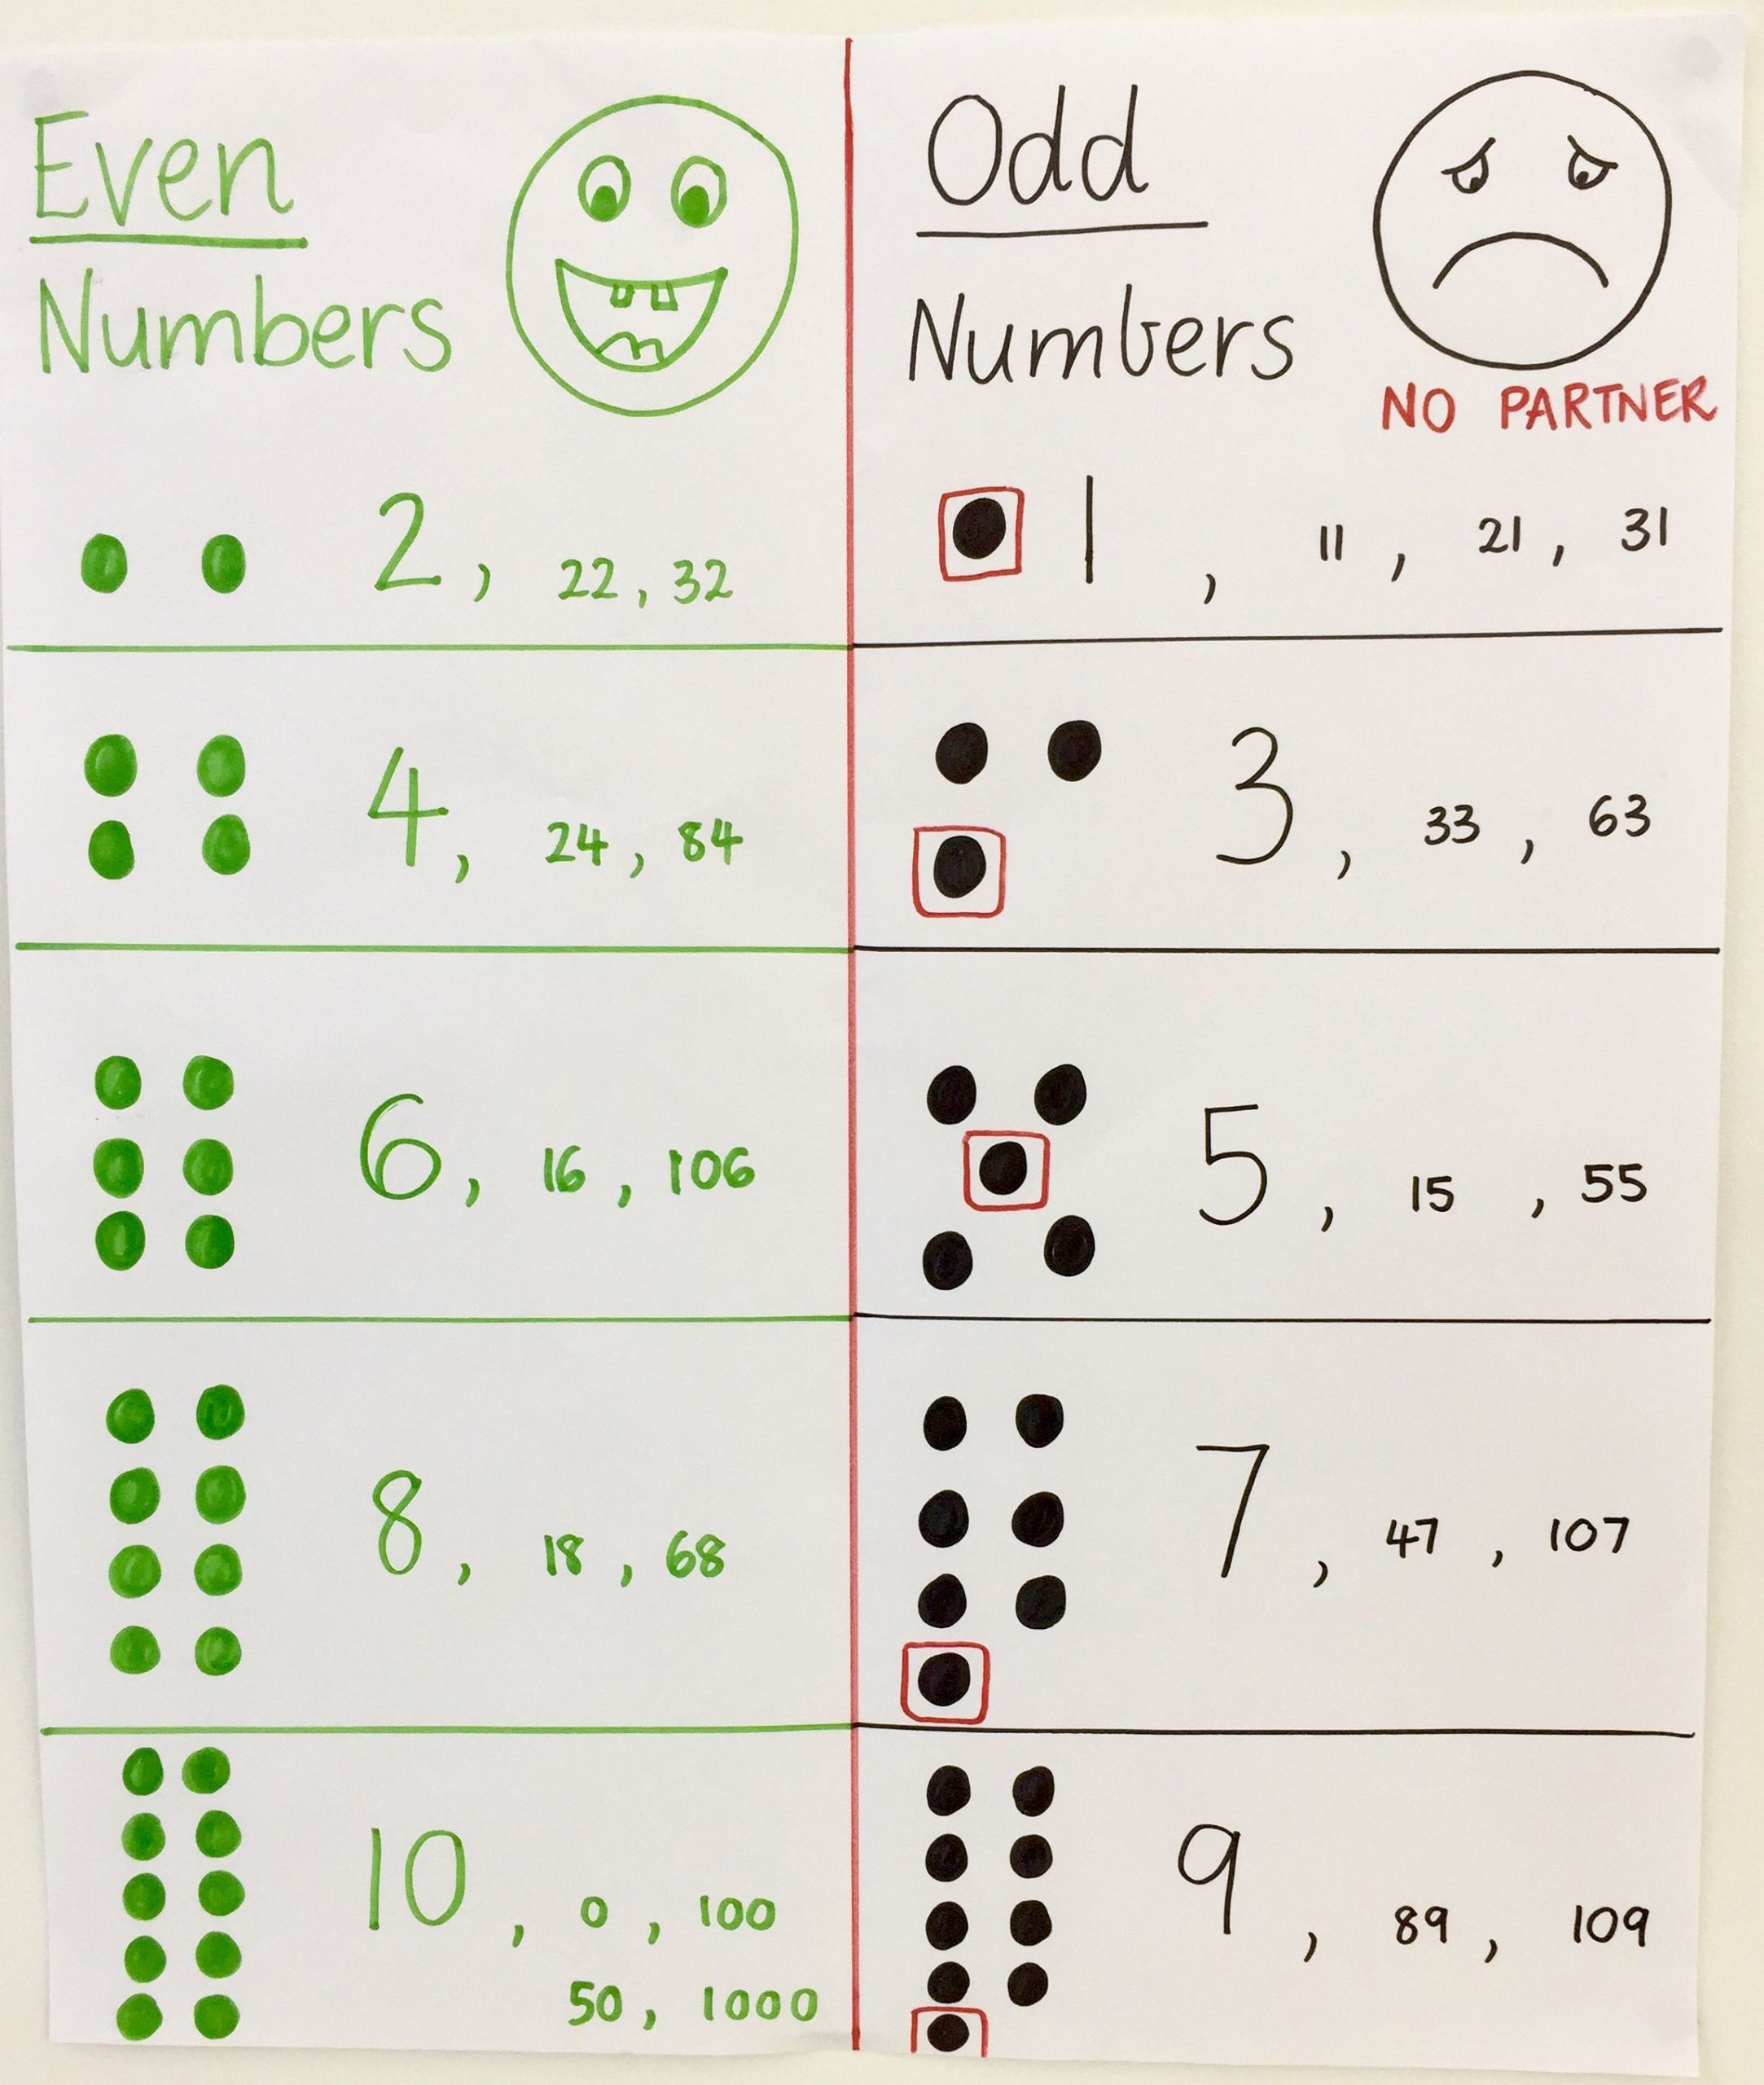 2 Even And Odd Number Worksheets Printable Even And Odd Number Worksheets Odd And Even Number In 2020 Number Worksheets Worksheets For Kids Even And Odd